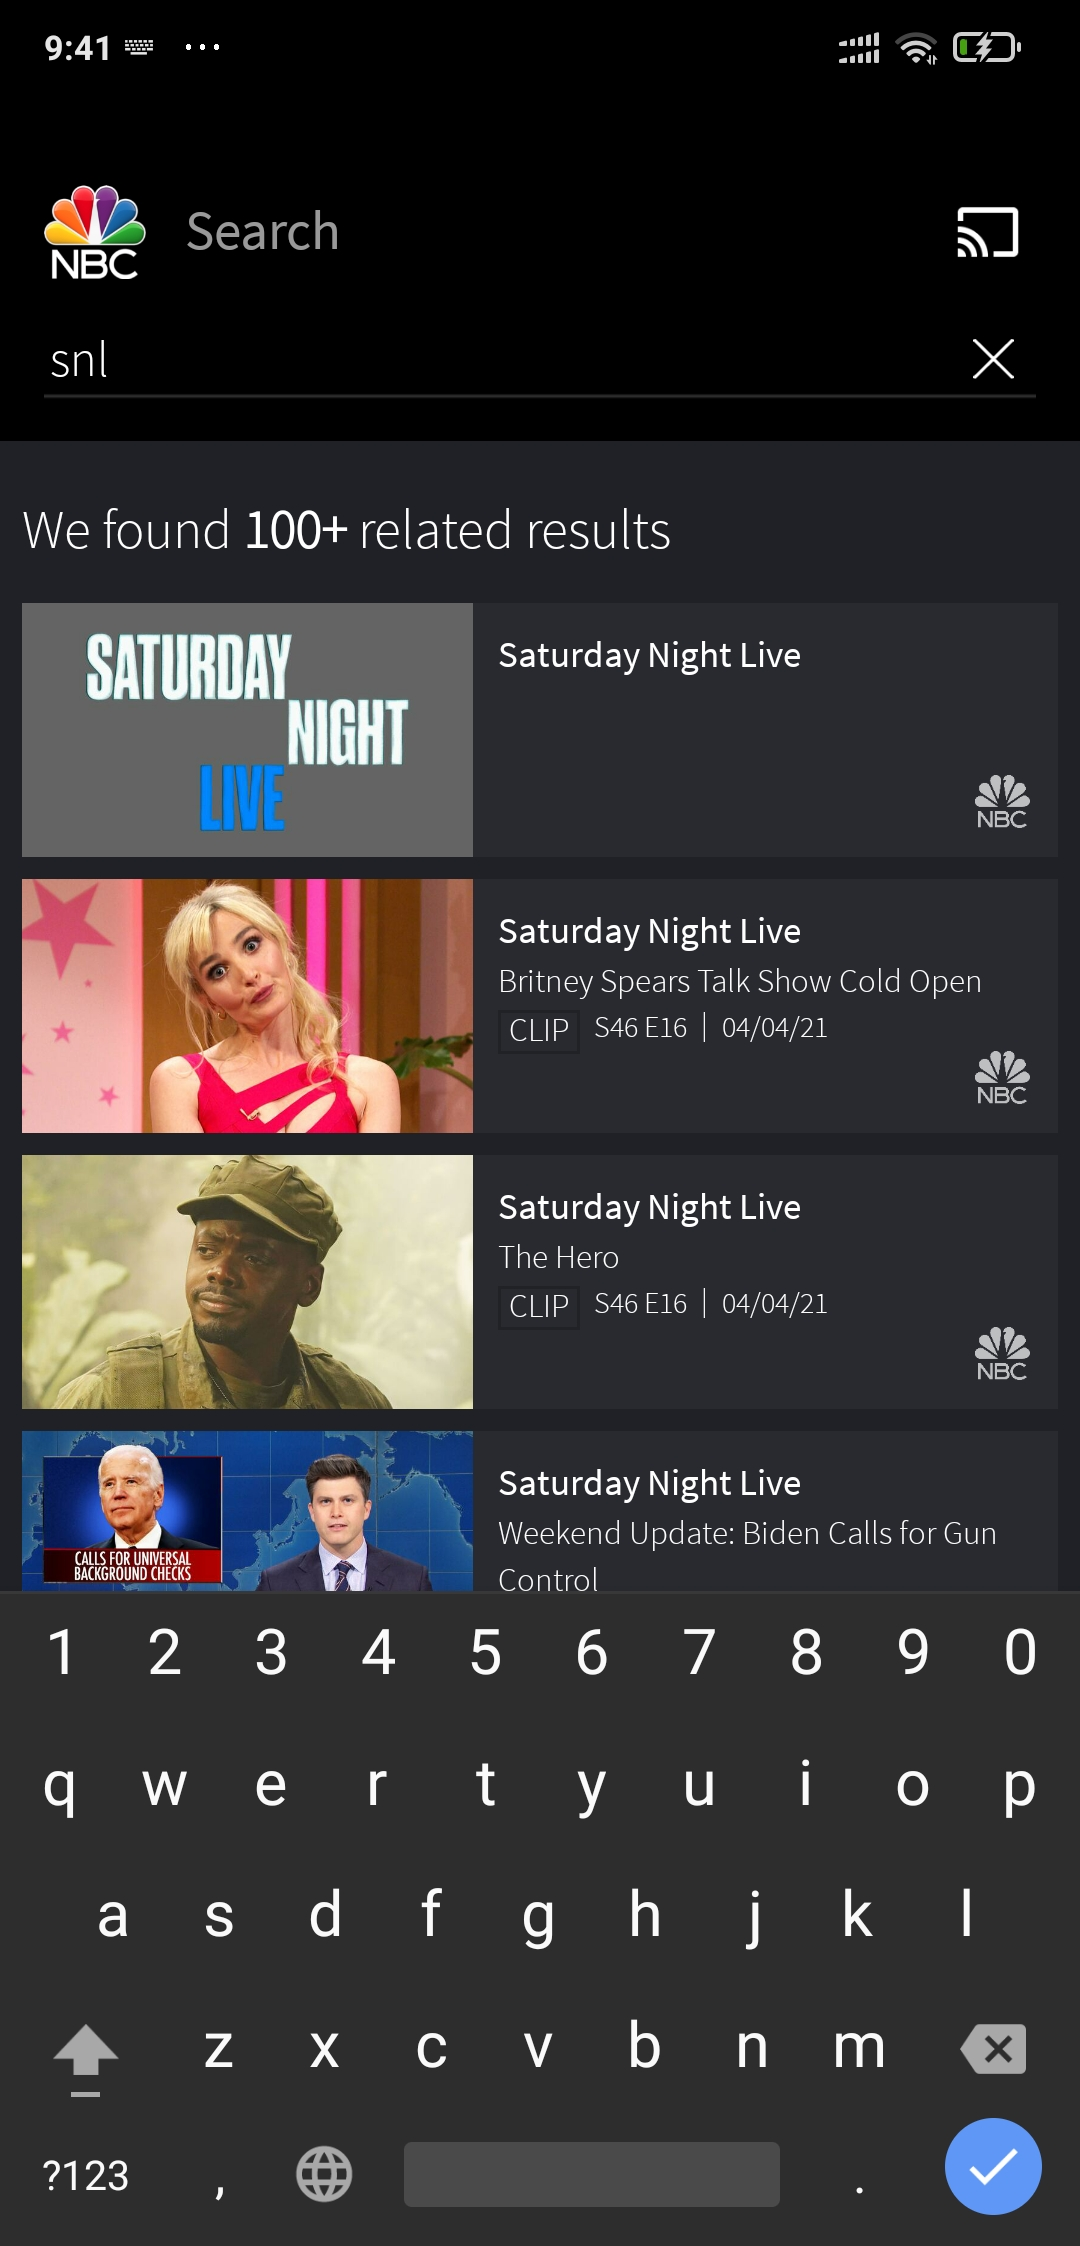 search for SNL inside the NBC app